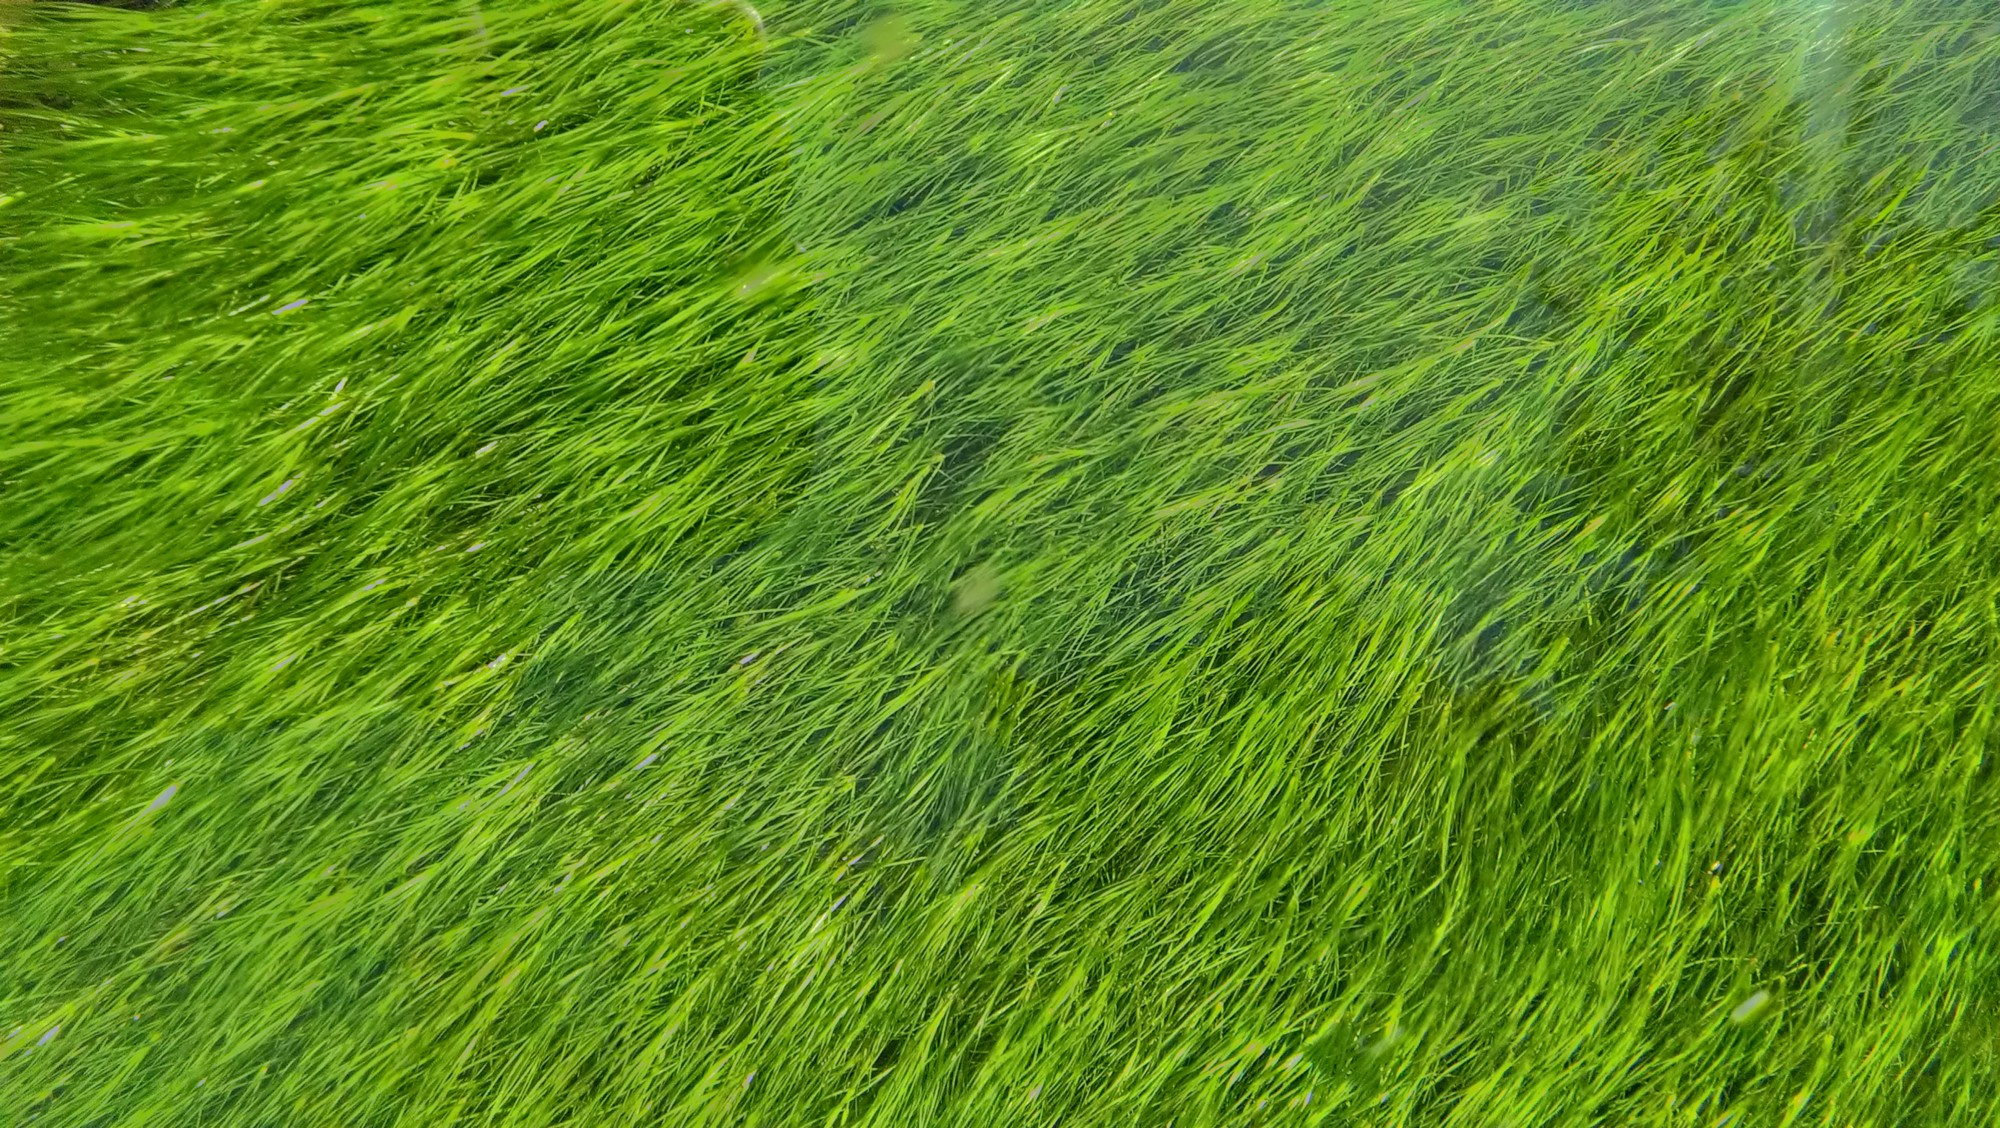 Wind blowing healthy green grass in a field